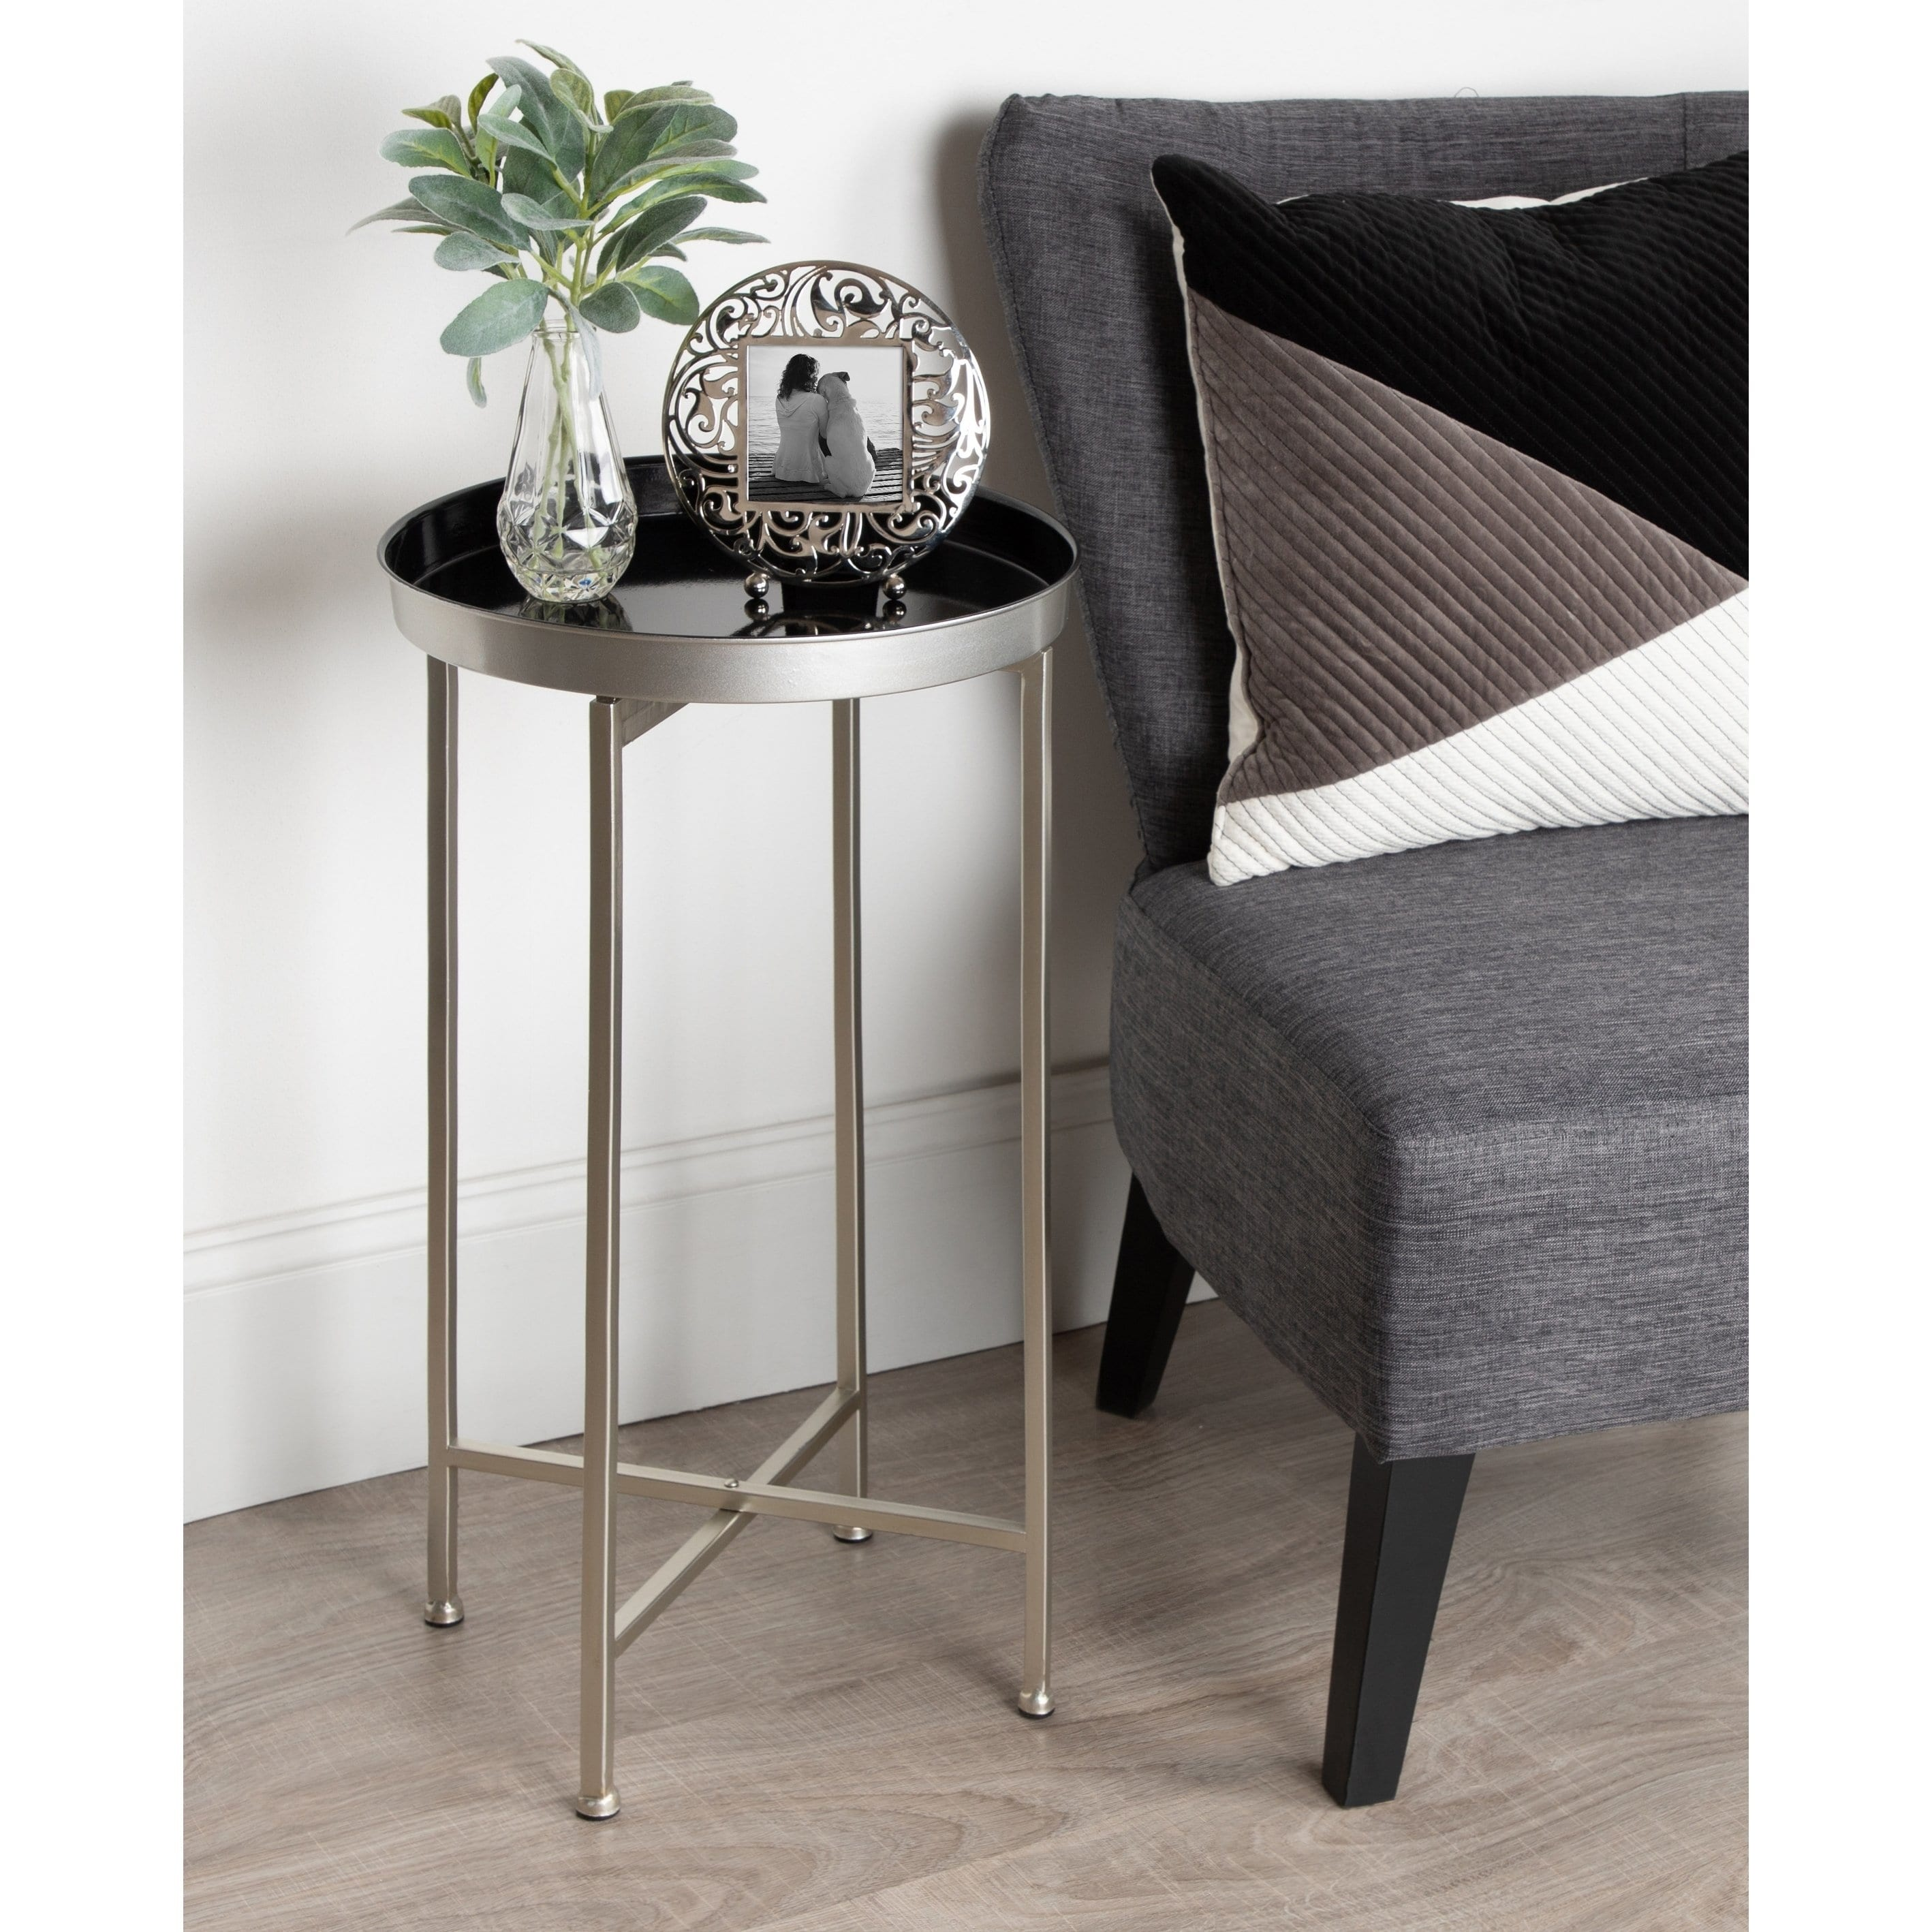 kate and laurel celia round metal foldable tray accent table free shipping today bedside ideas barn clamp lamp tall sofa outdoor ice cooler world market lamps reclaimed wood